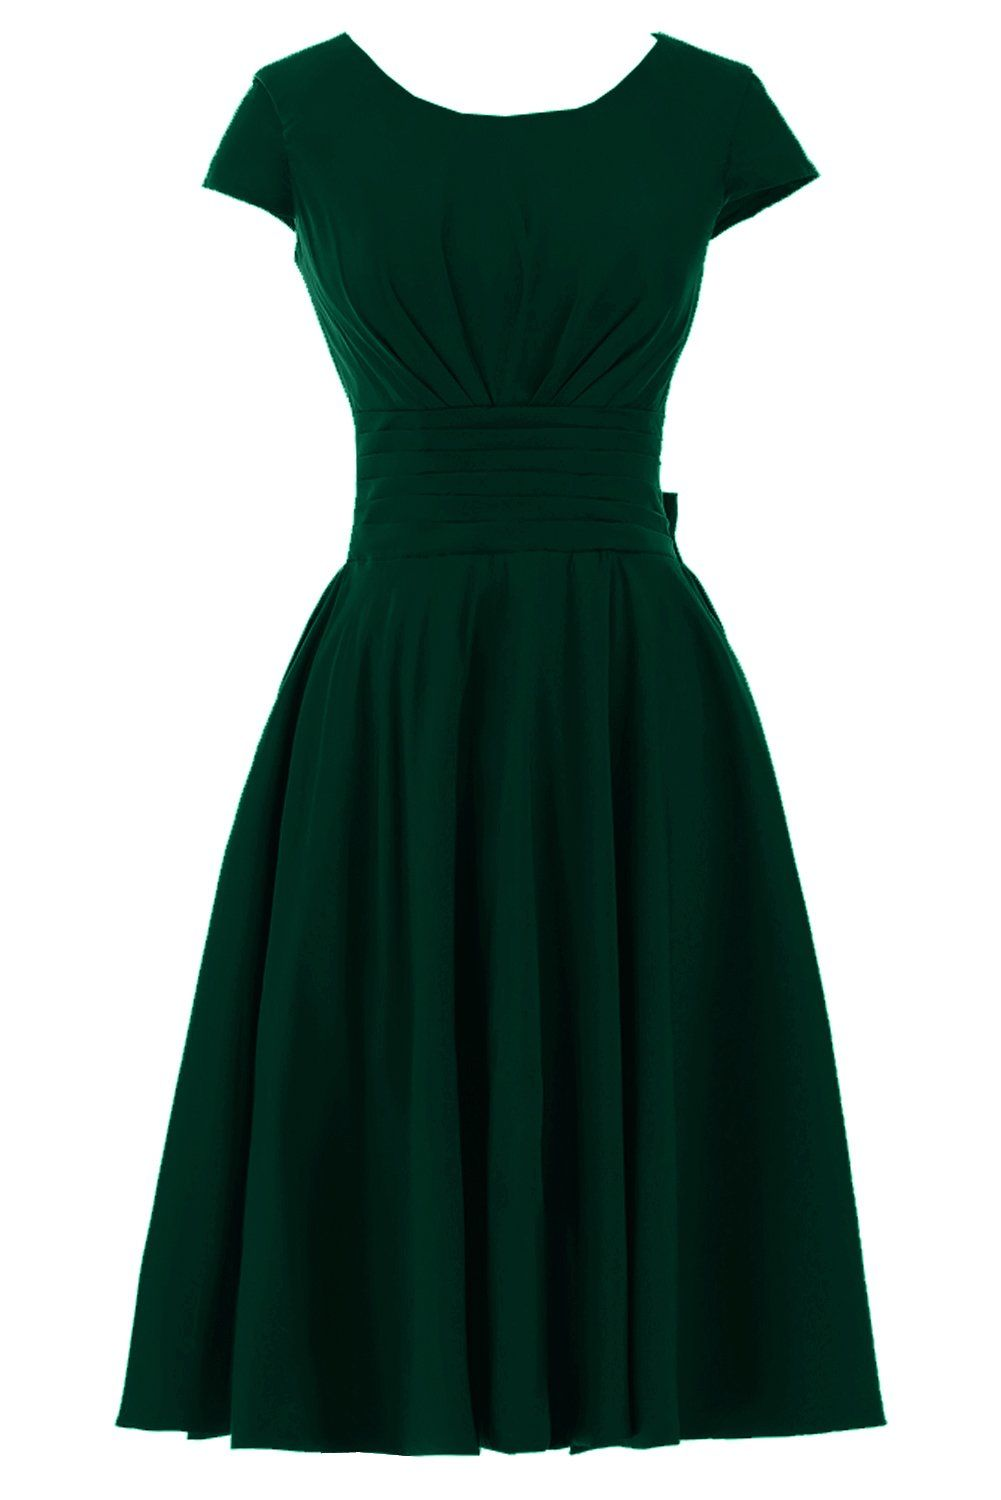 Short sleeve dresses for wedding guests  Sunvary Short Sleeves Bridesmaid Dress Evening Pageant Dress Short